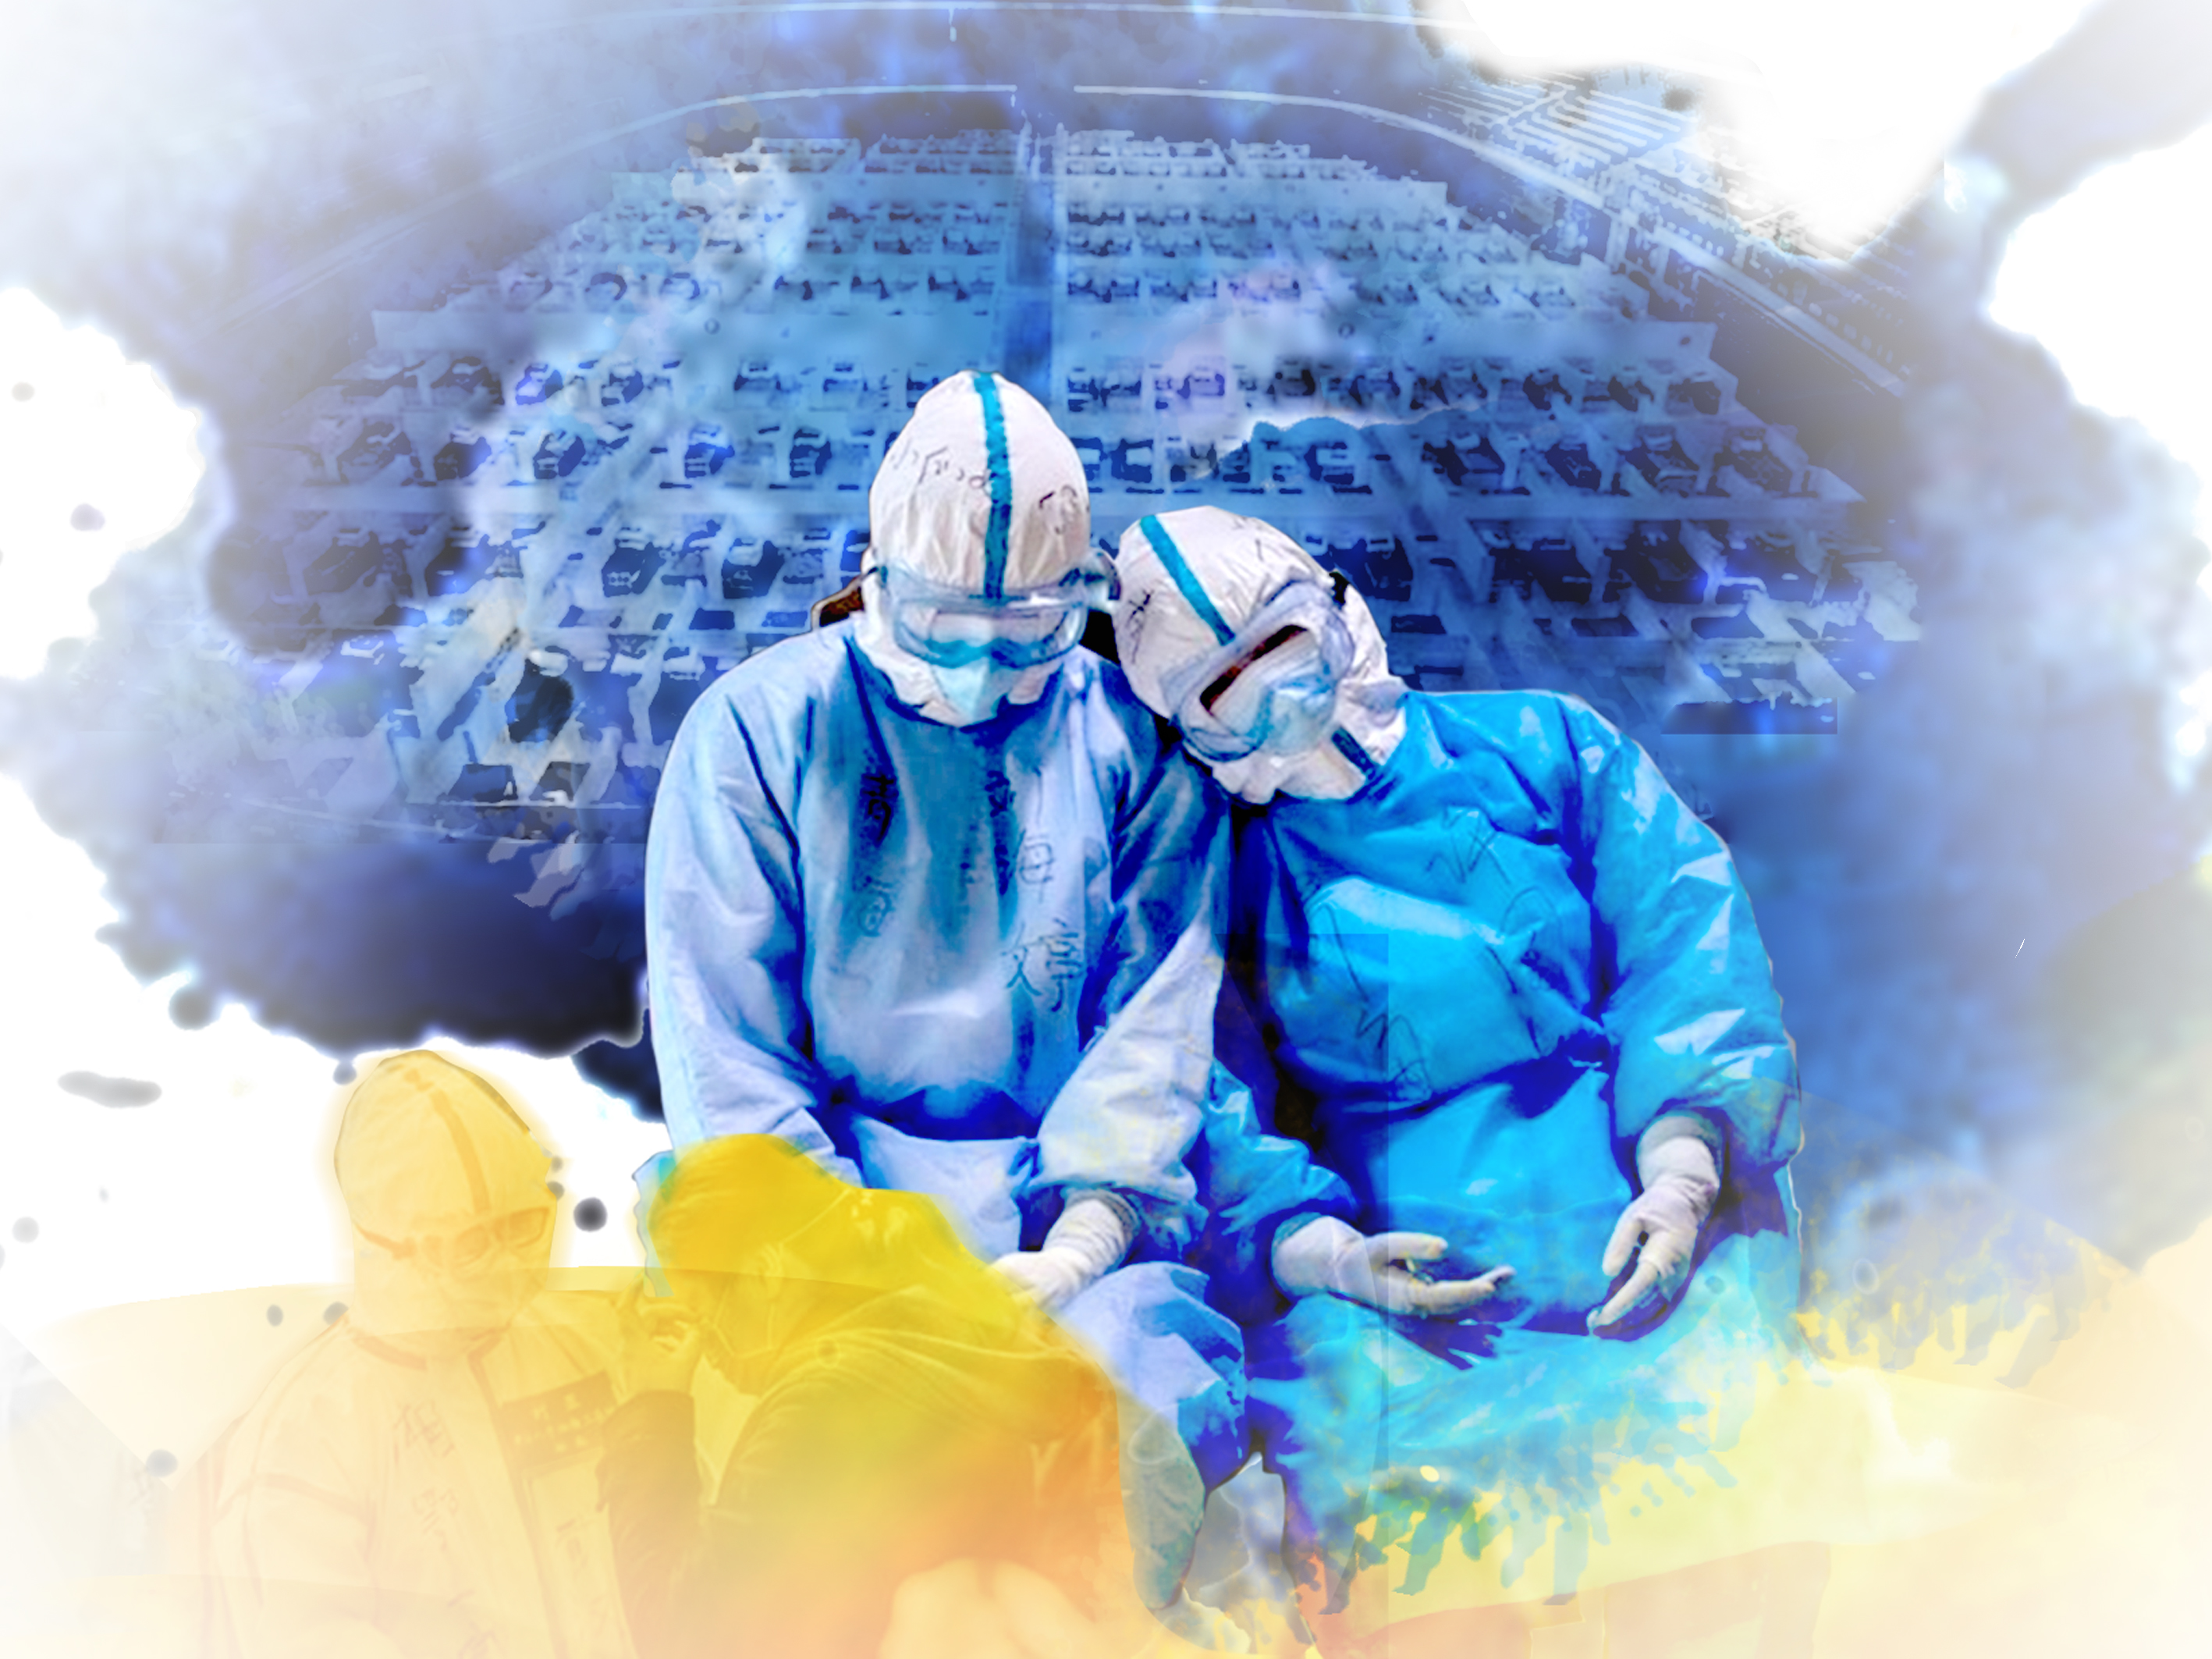 Chinese Medical Workers' Day: Thank you for being there for us